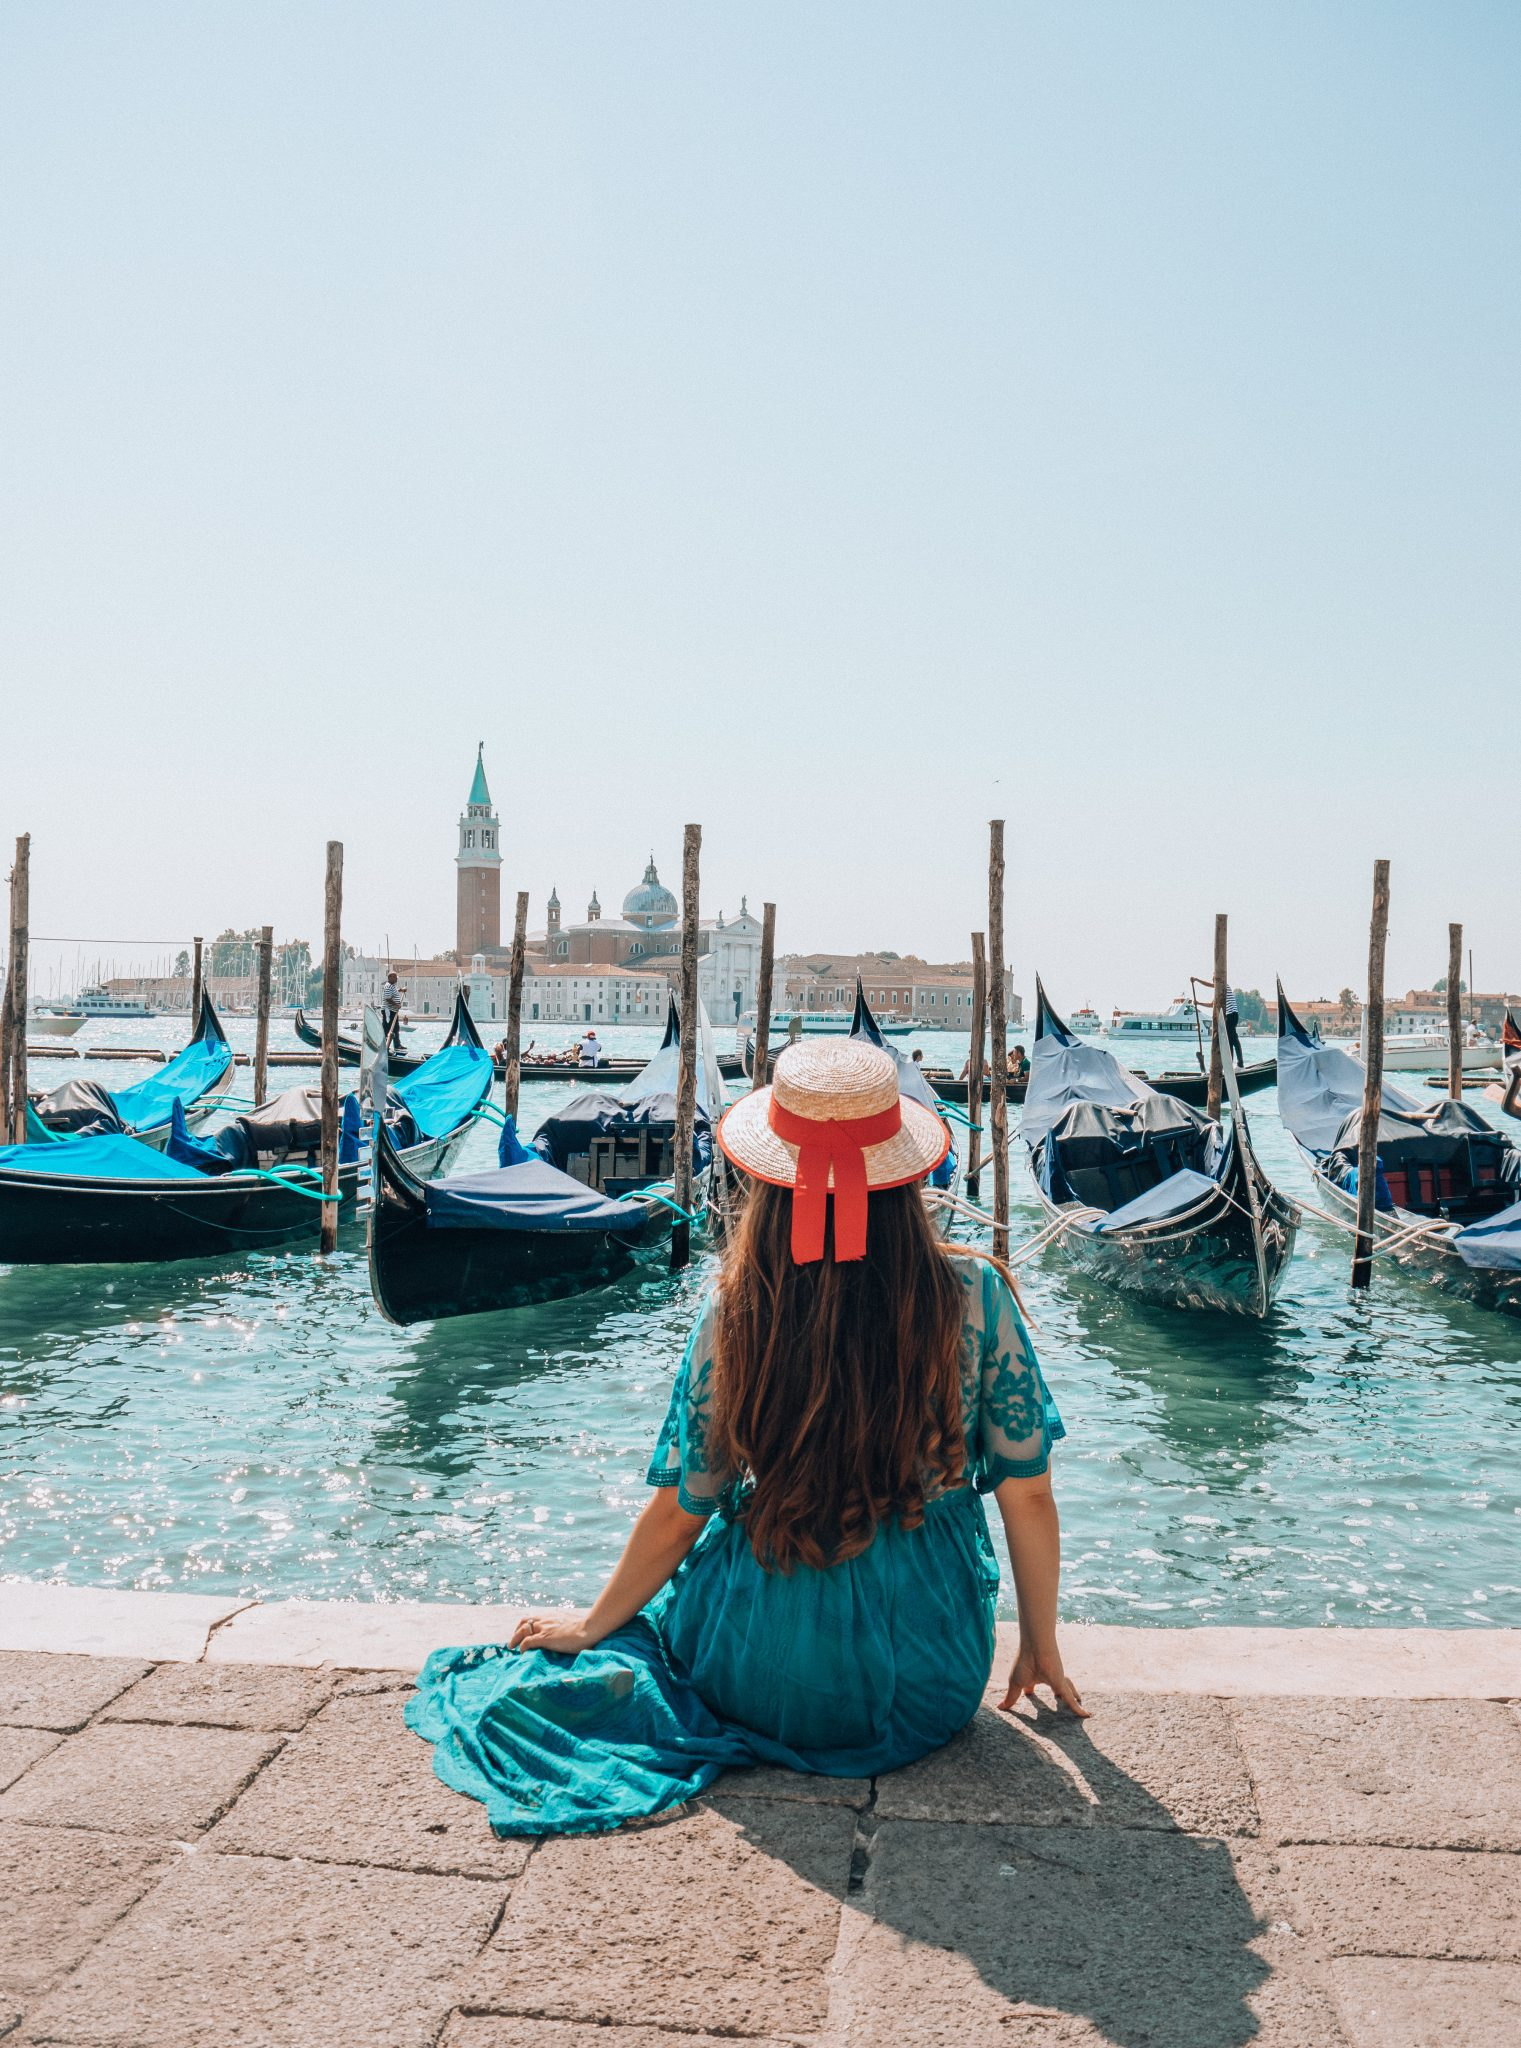 Most Instagrammable Places In Venice - The Waterfront